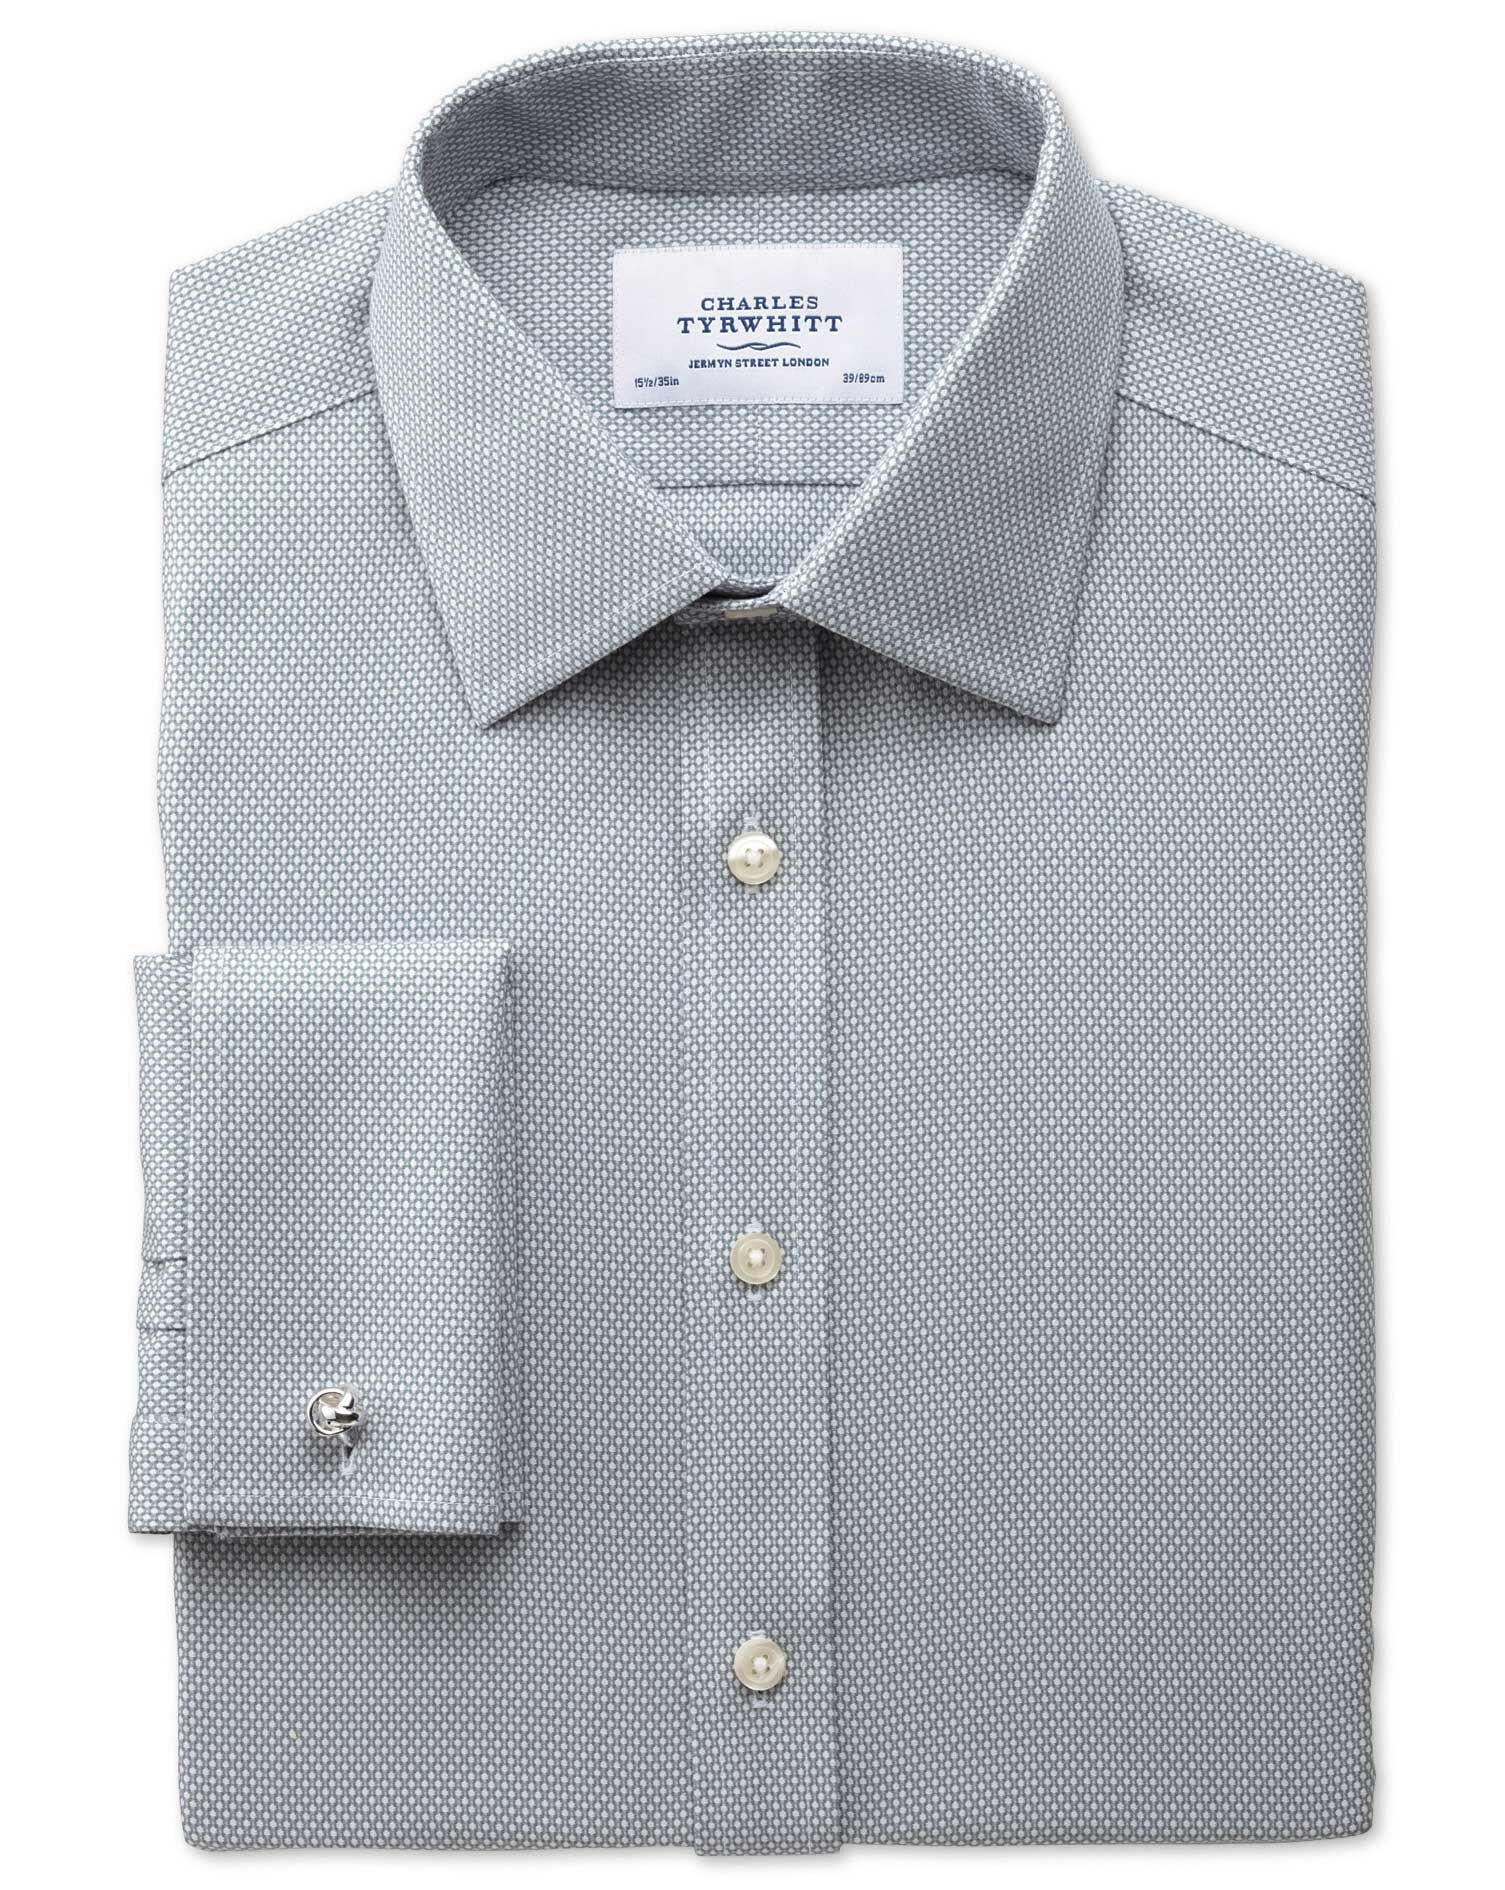 Slim Fit Non-Iron Honeycomb Grey Cotton Formal Shirt Double Cuff Size 16/38 by Charles Tyrwhitt